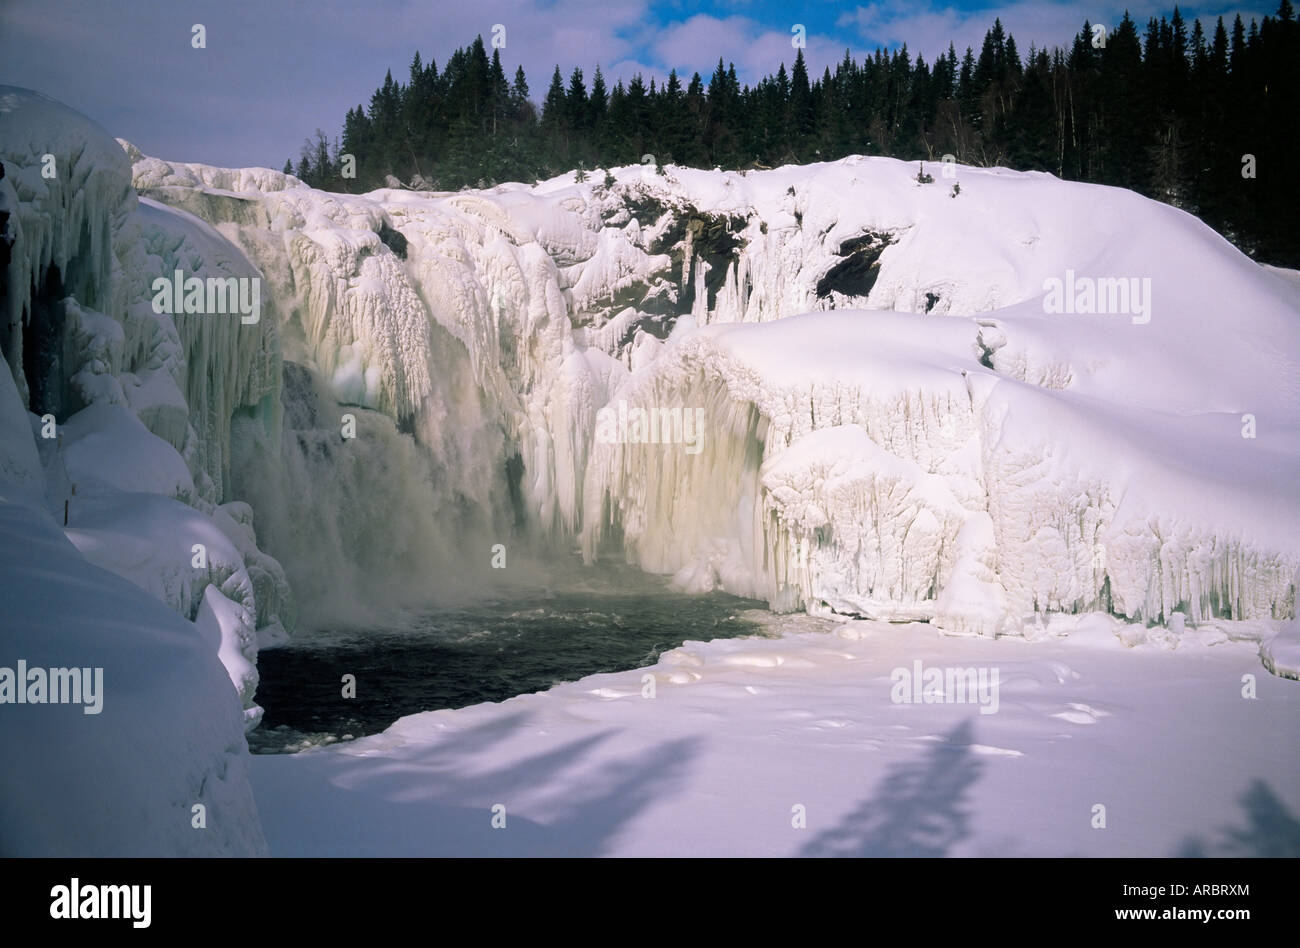 Tannfors, a 32m high, 60m wide frozen waterfall, near Are, Jamtland, Sweden, Scandinavia, Europe - Stock Image